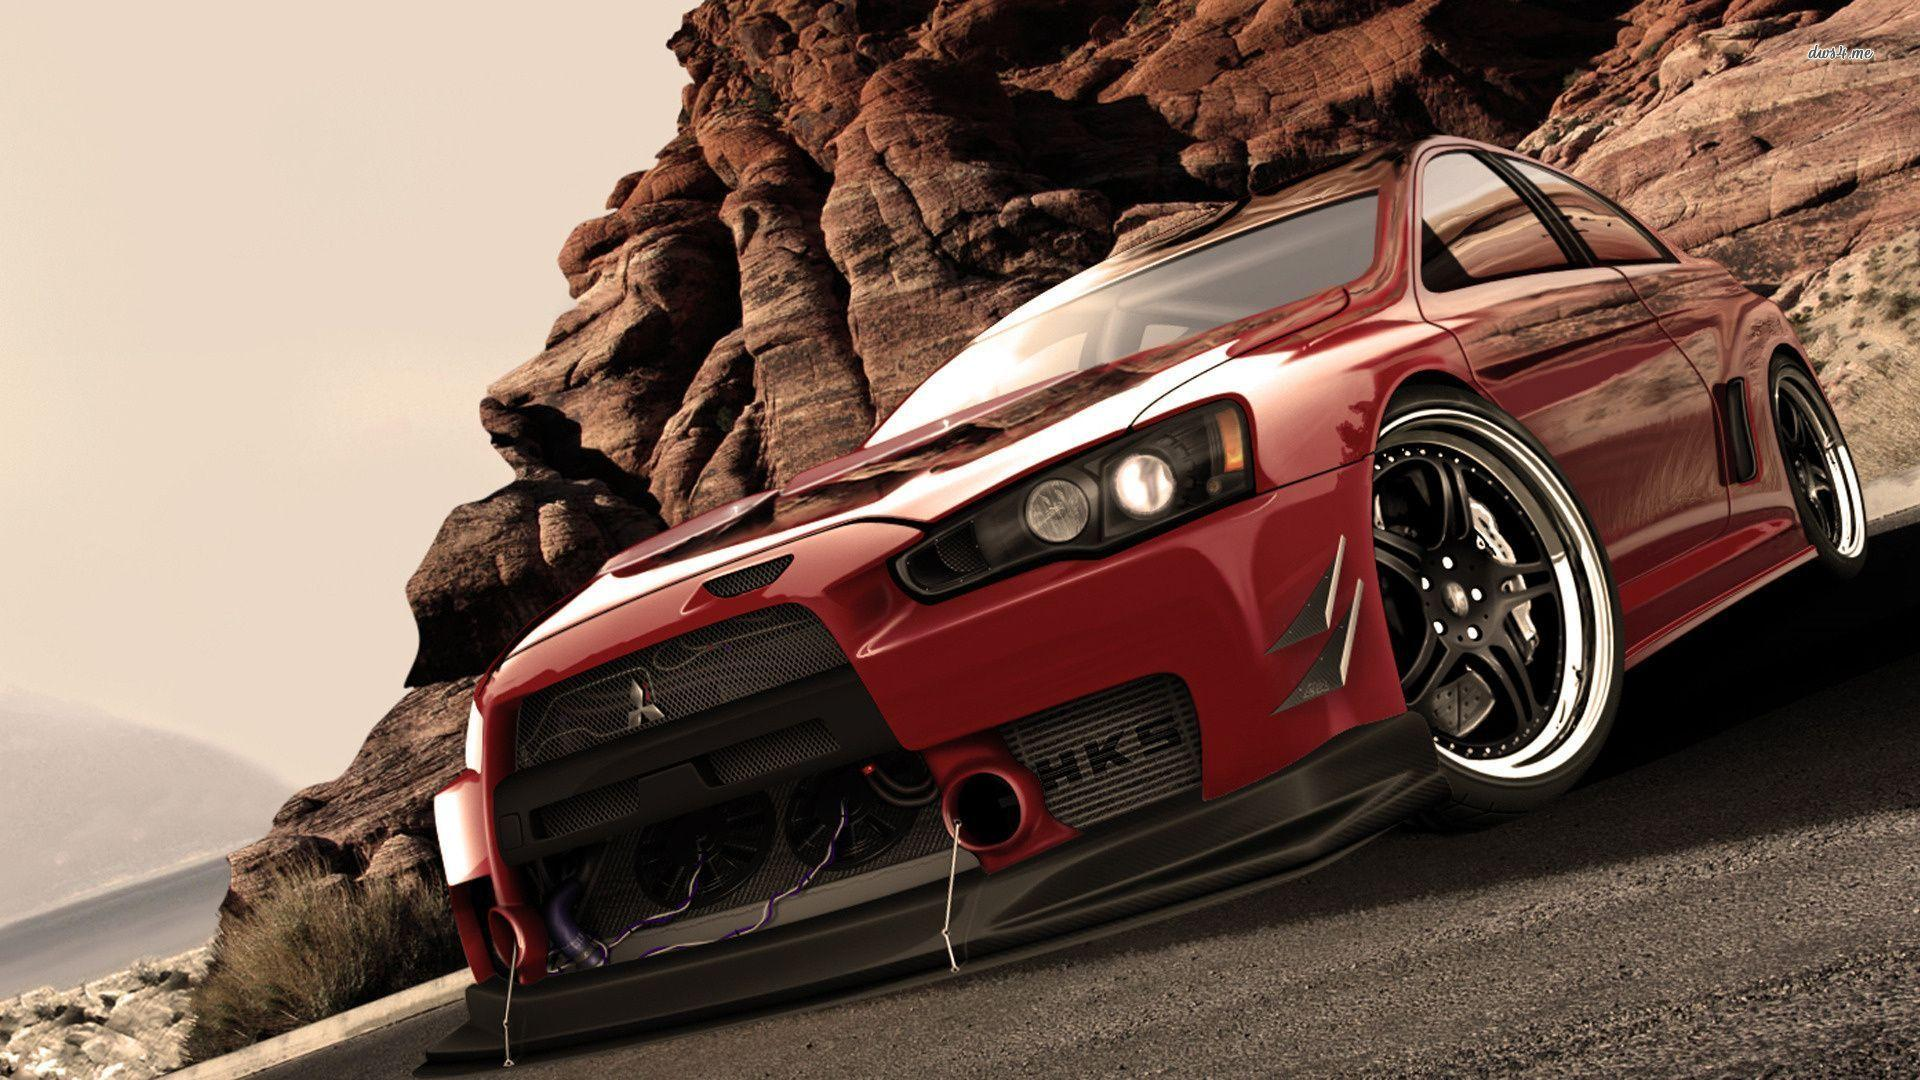 sick wallpapers hd cars - photo #38